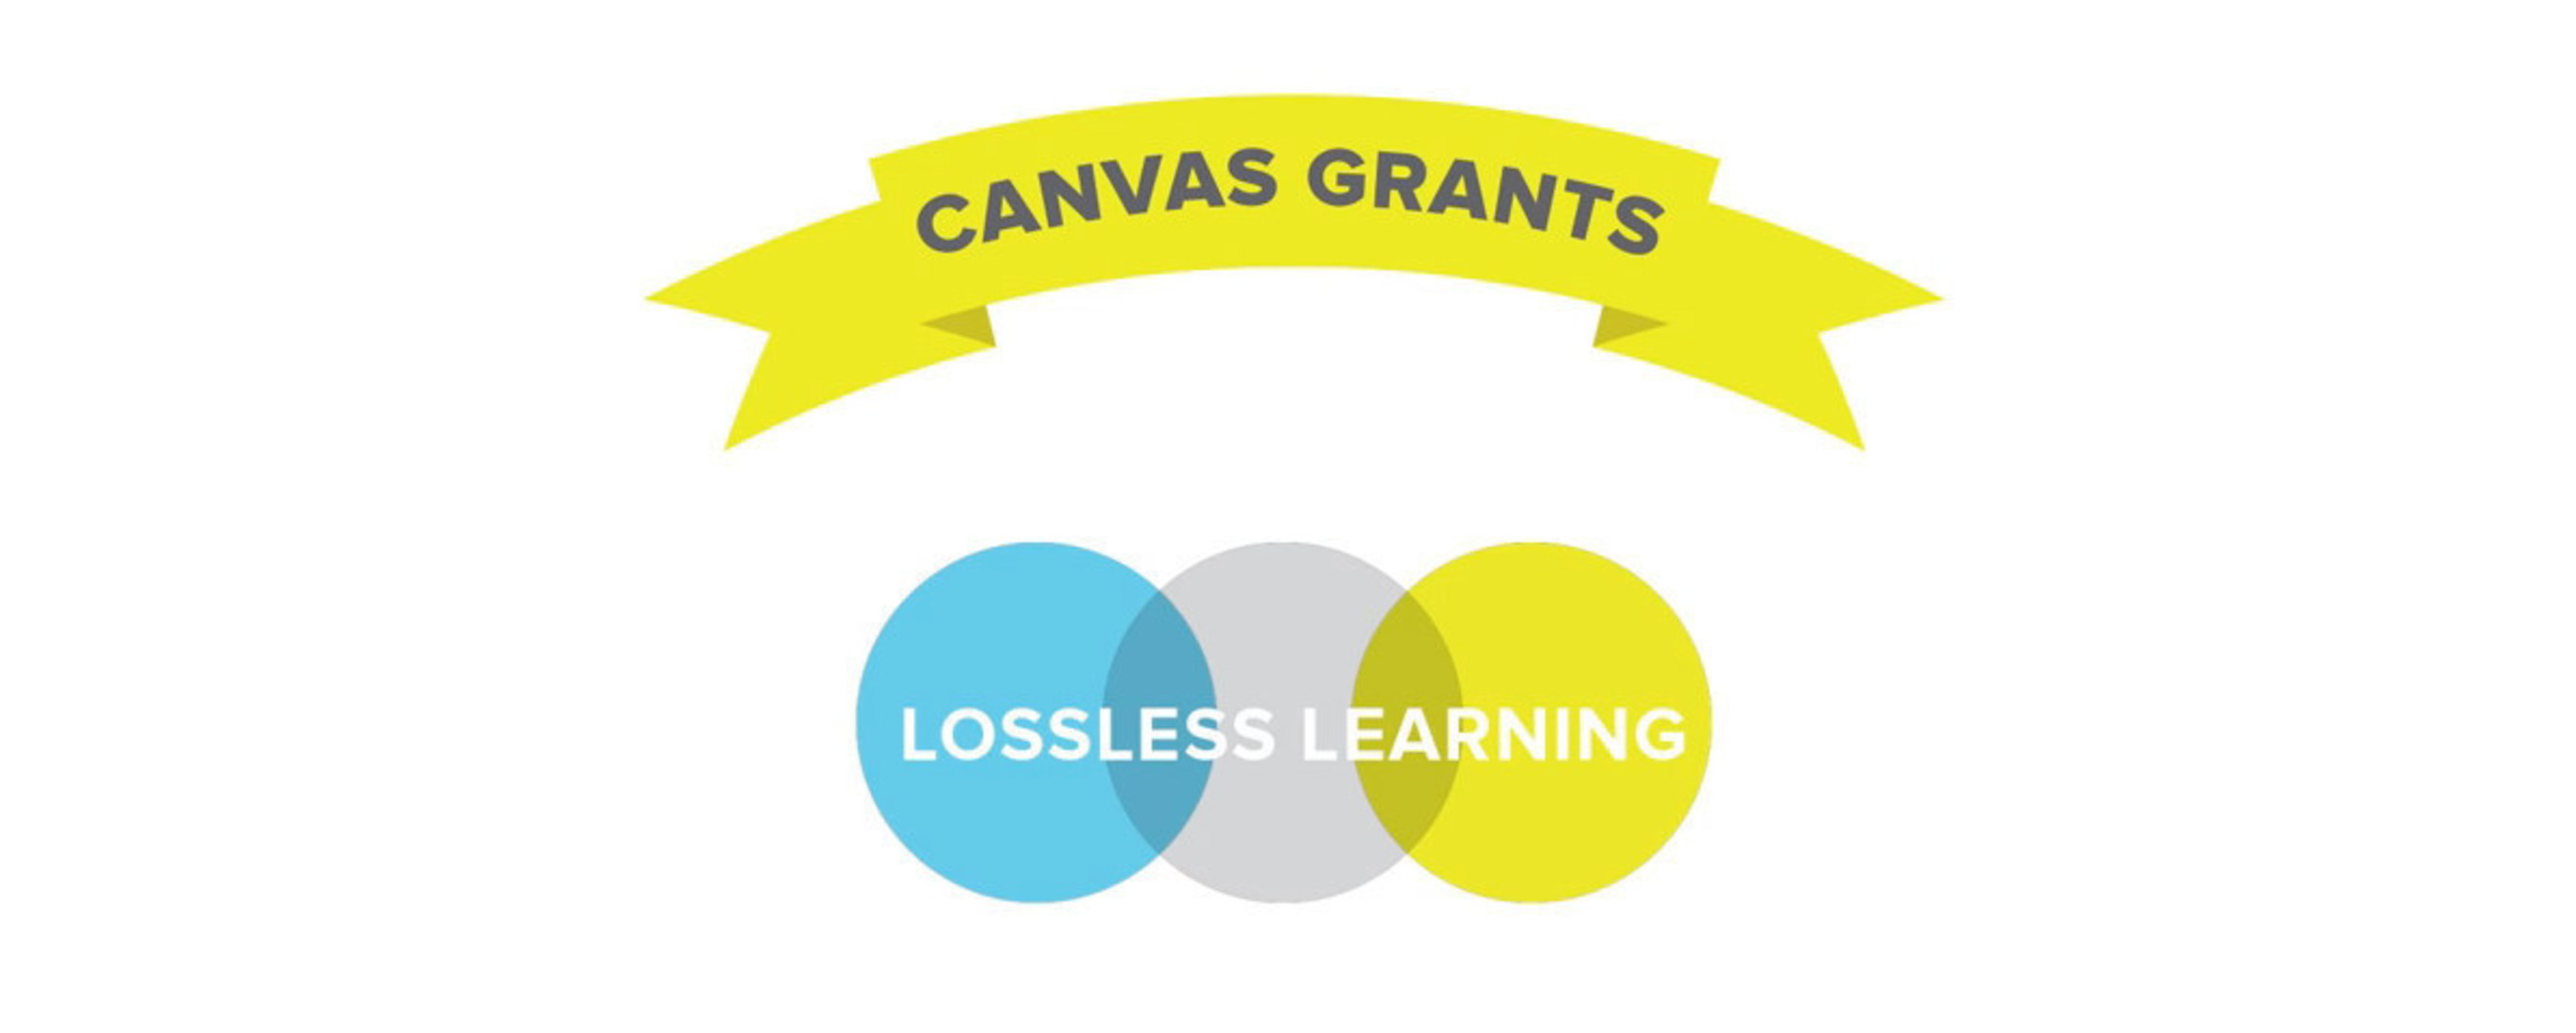 """Learning technology company Instructure, the creator of the Canvas learning management system (LMS) for K-12 and higher education, today announced the return of Canvas Grants, a program that awards $100,000 in grants to projects that spur innovation in learning. The company introduced the program at the annual EDUCAUSE conference in Orlando, Fla., inviting innovators in both K-12 and higher ed to submit proposals that further """"lossless learning,"""" this year's Canvas Grants theme. (PRNewsFoto/Instructure)"""